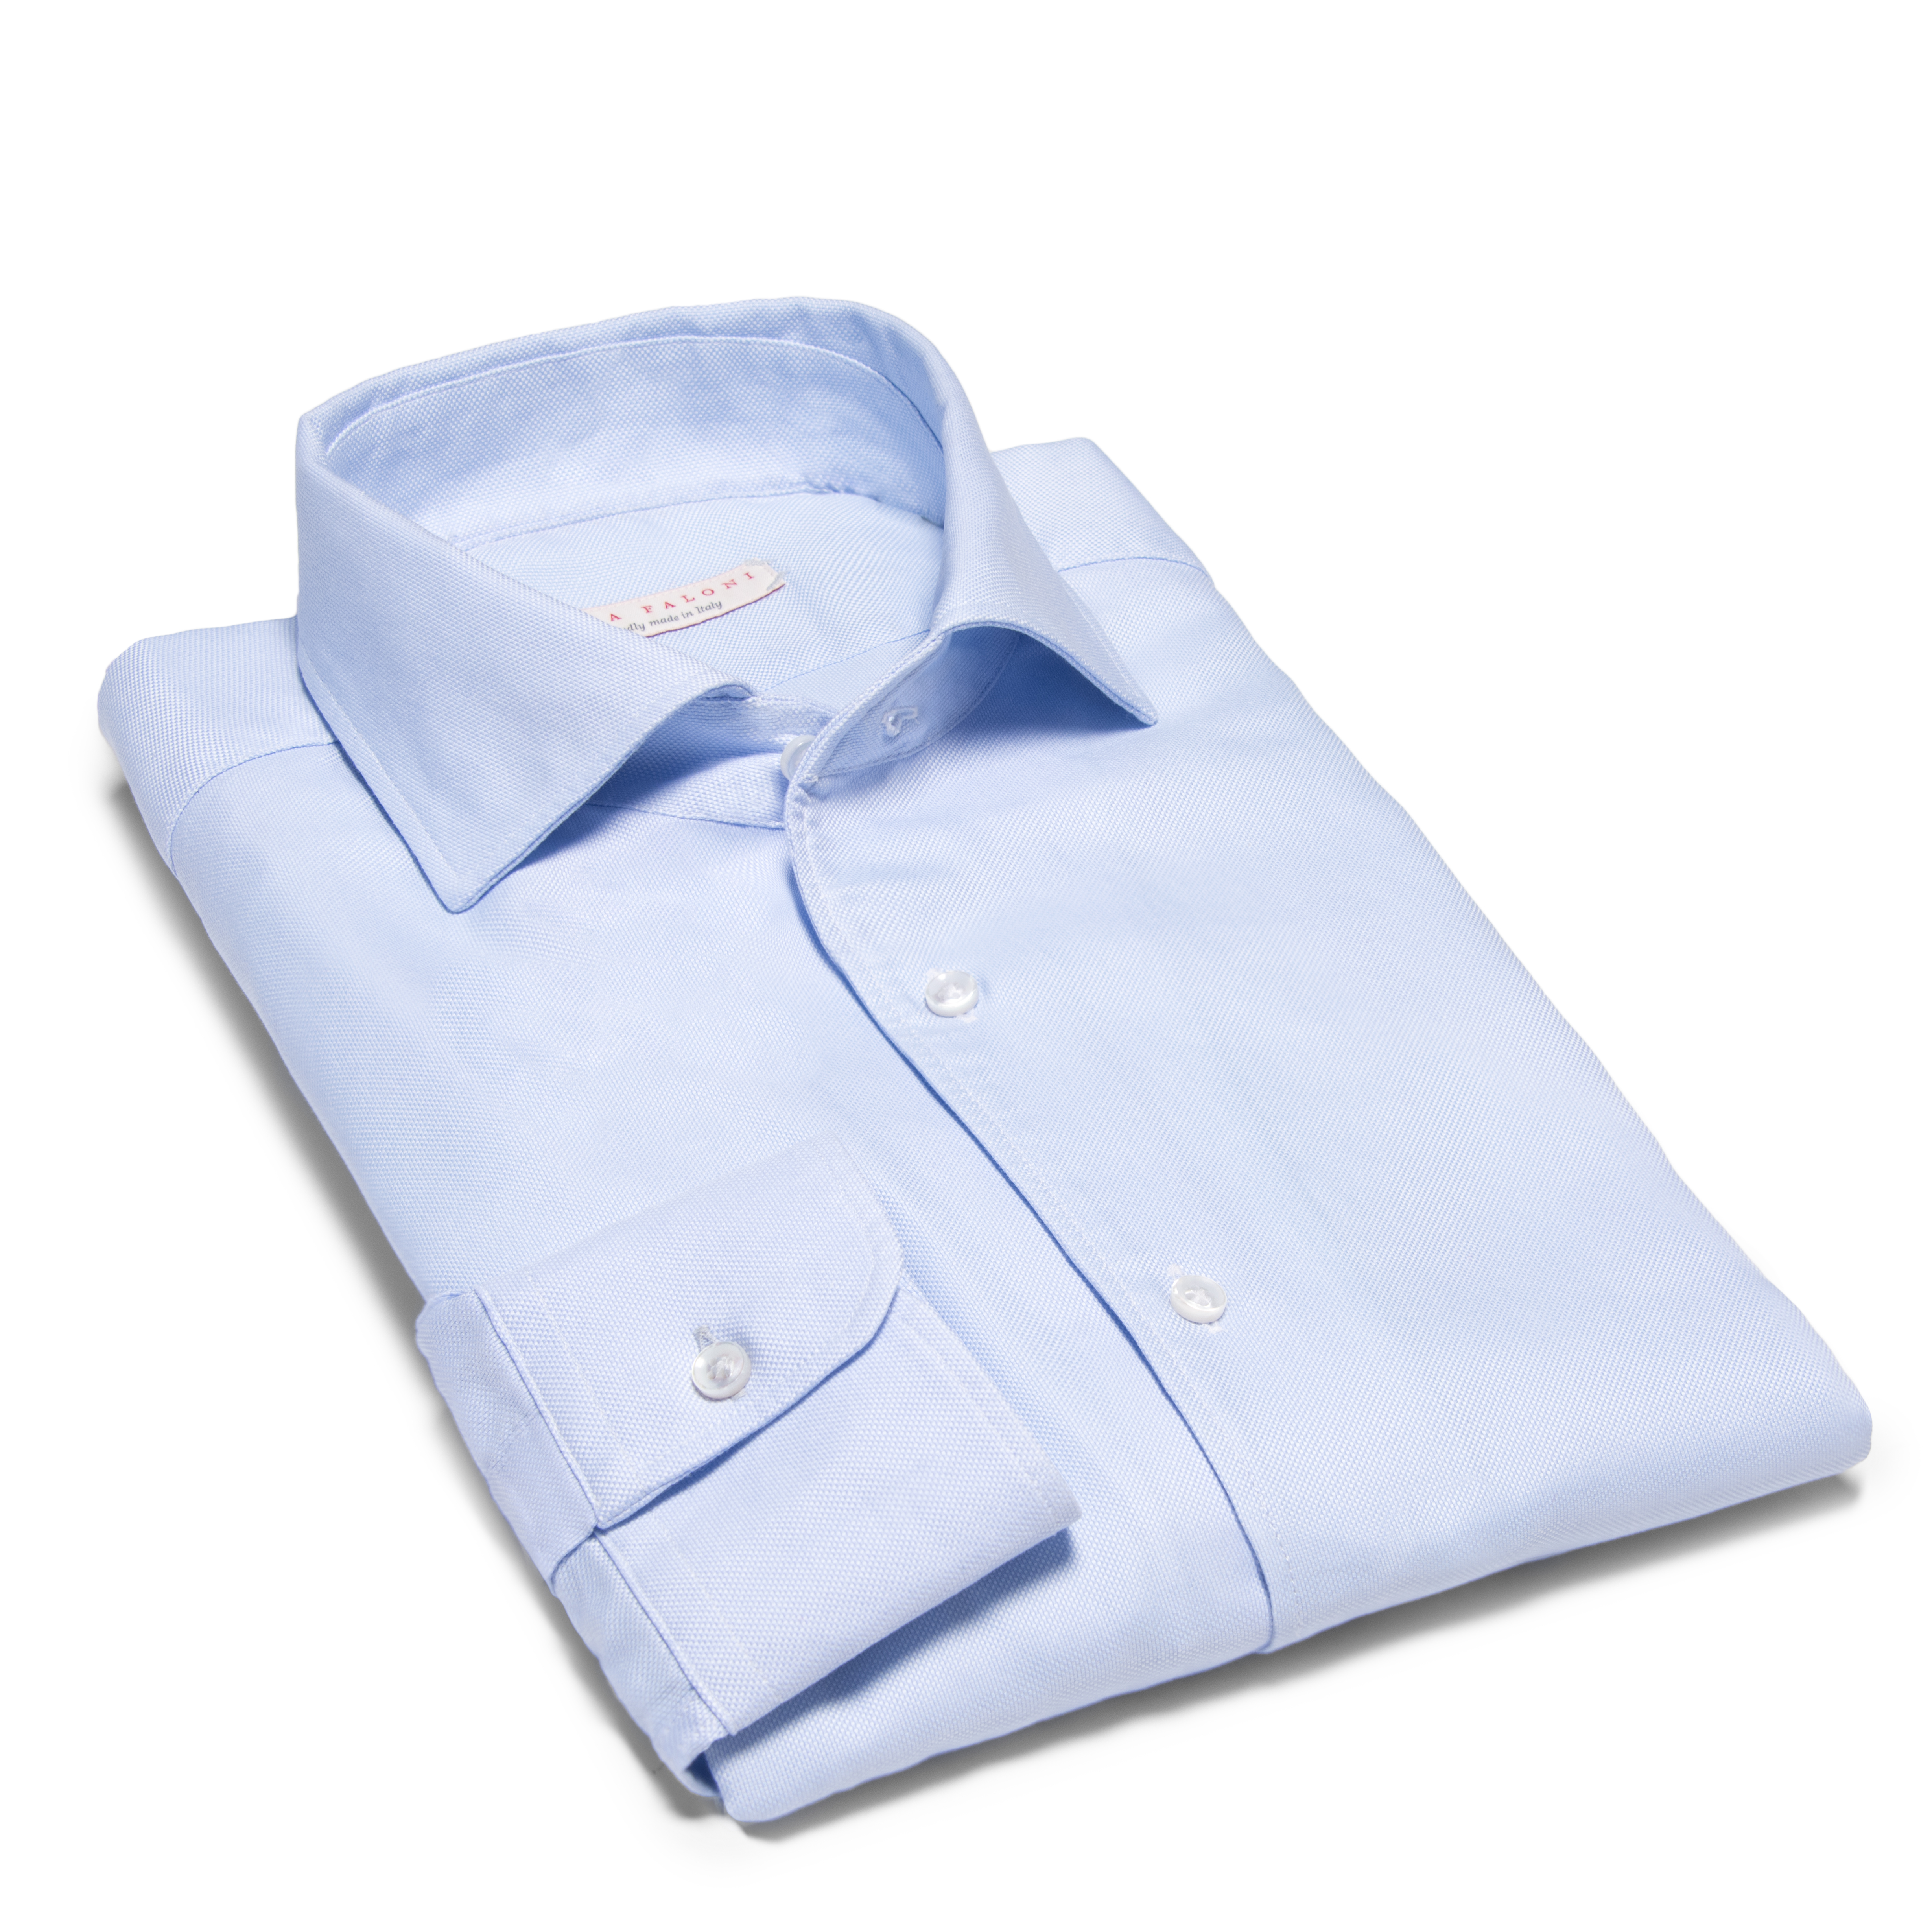 Luca Faloni's light blue brushed cotton shirt